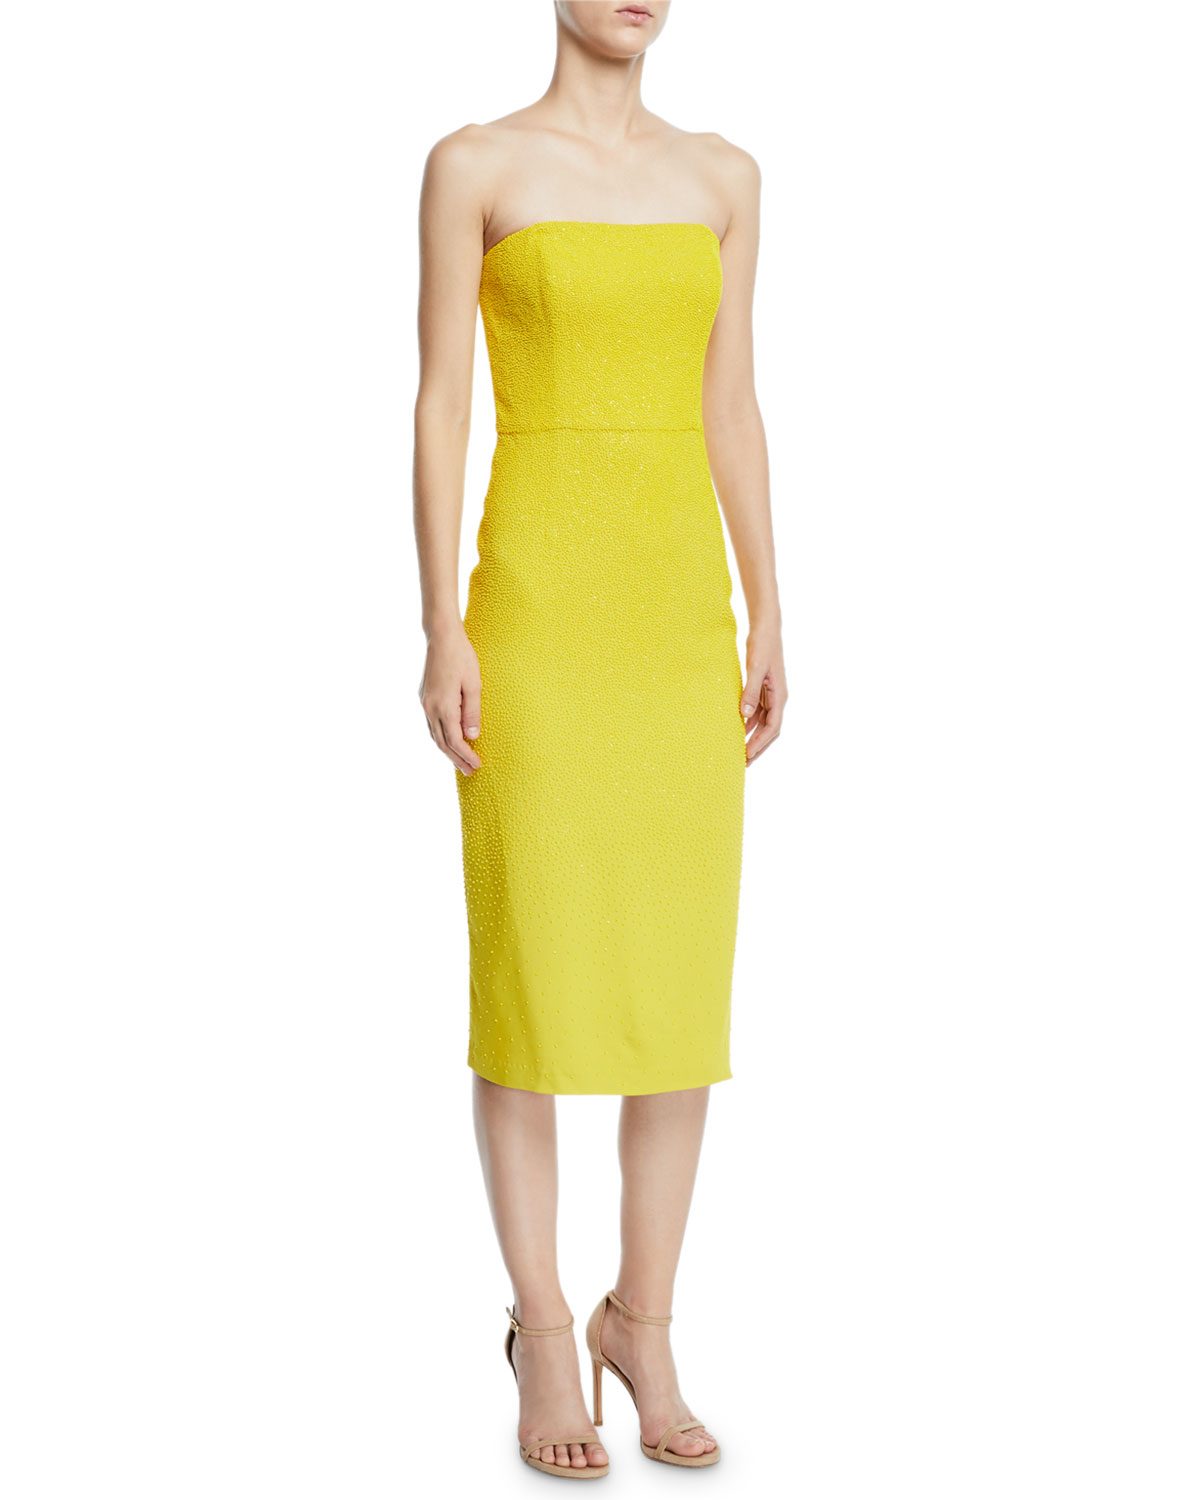 AHLUWALIA Yria Shimmery Strapless Knee-Length Gown in Yellow